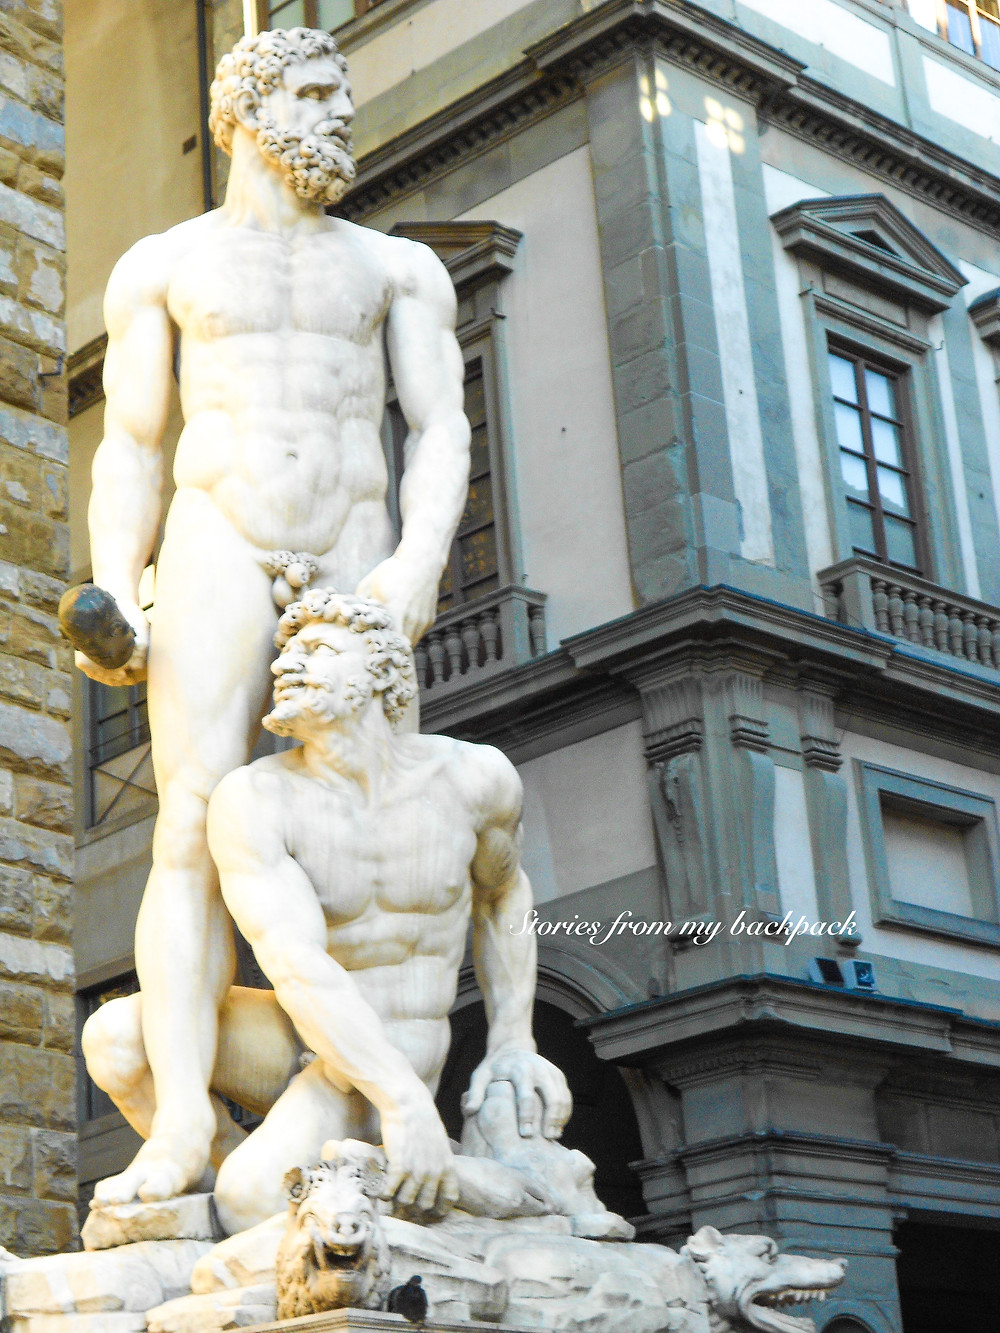 Bartolomeo Bandinelli, Bandinelli, Piazza della Signoria, Must visit Piazza in Florence, Must see artwork in Italy, Most famous places in Florence, Florence sightseeing, Best views in Florence Scultures in Piazza della Signoria